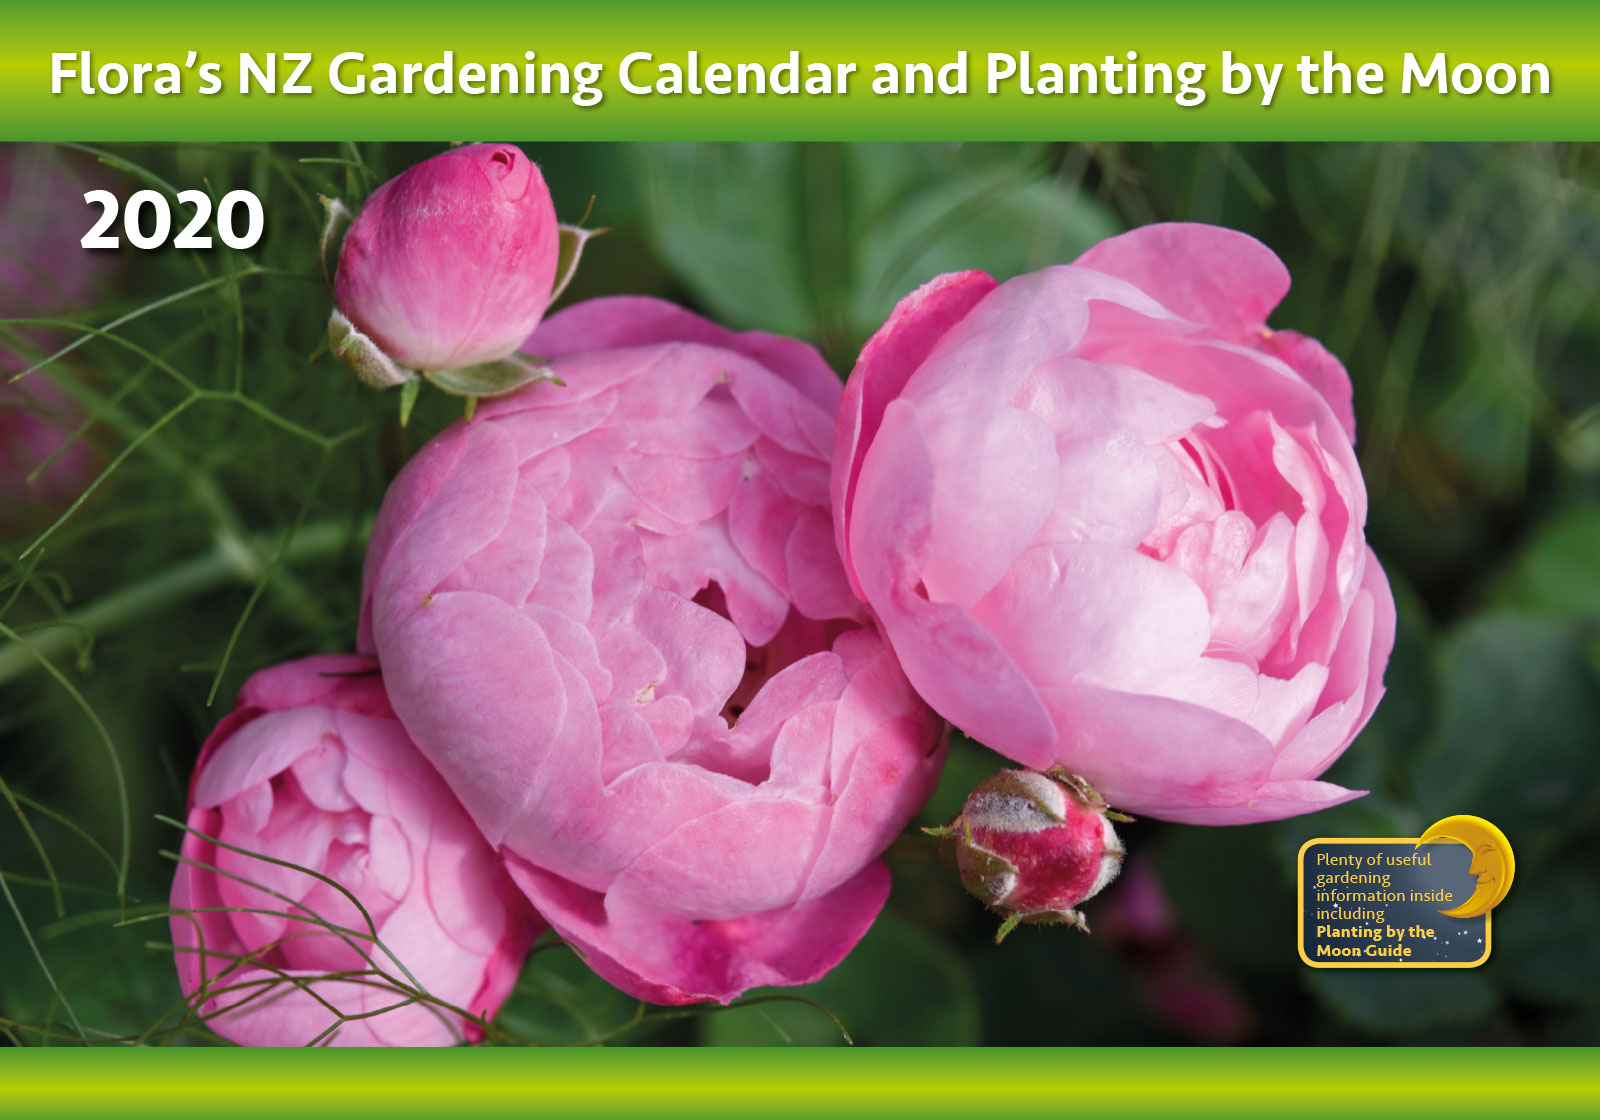 Flora's Gardening Calendar and Planting by the Moon 2019